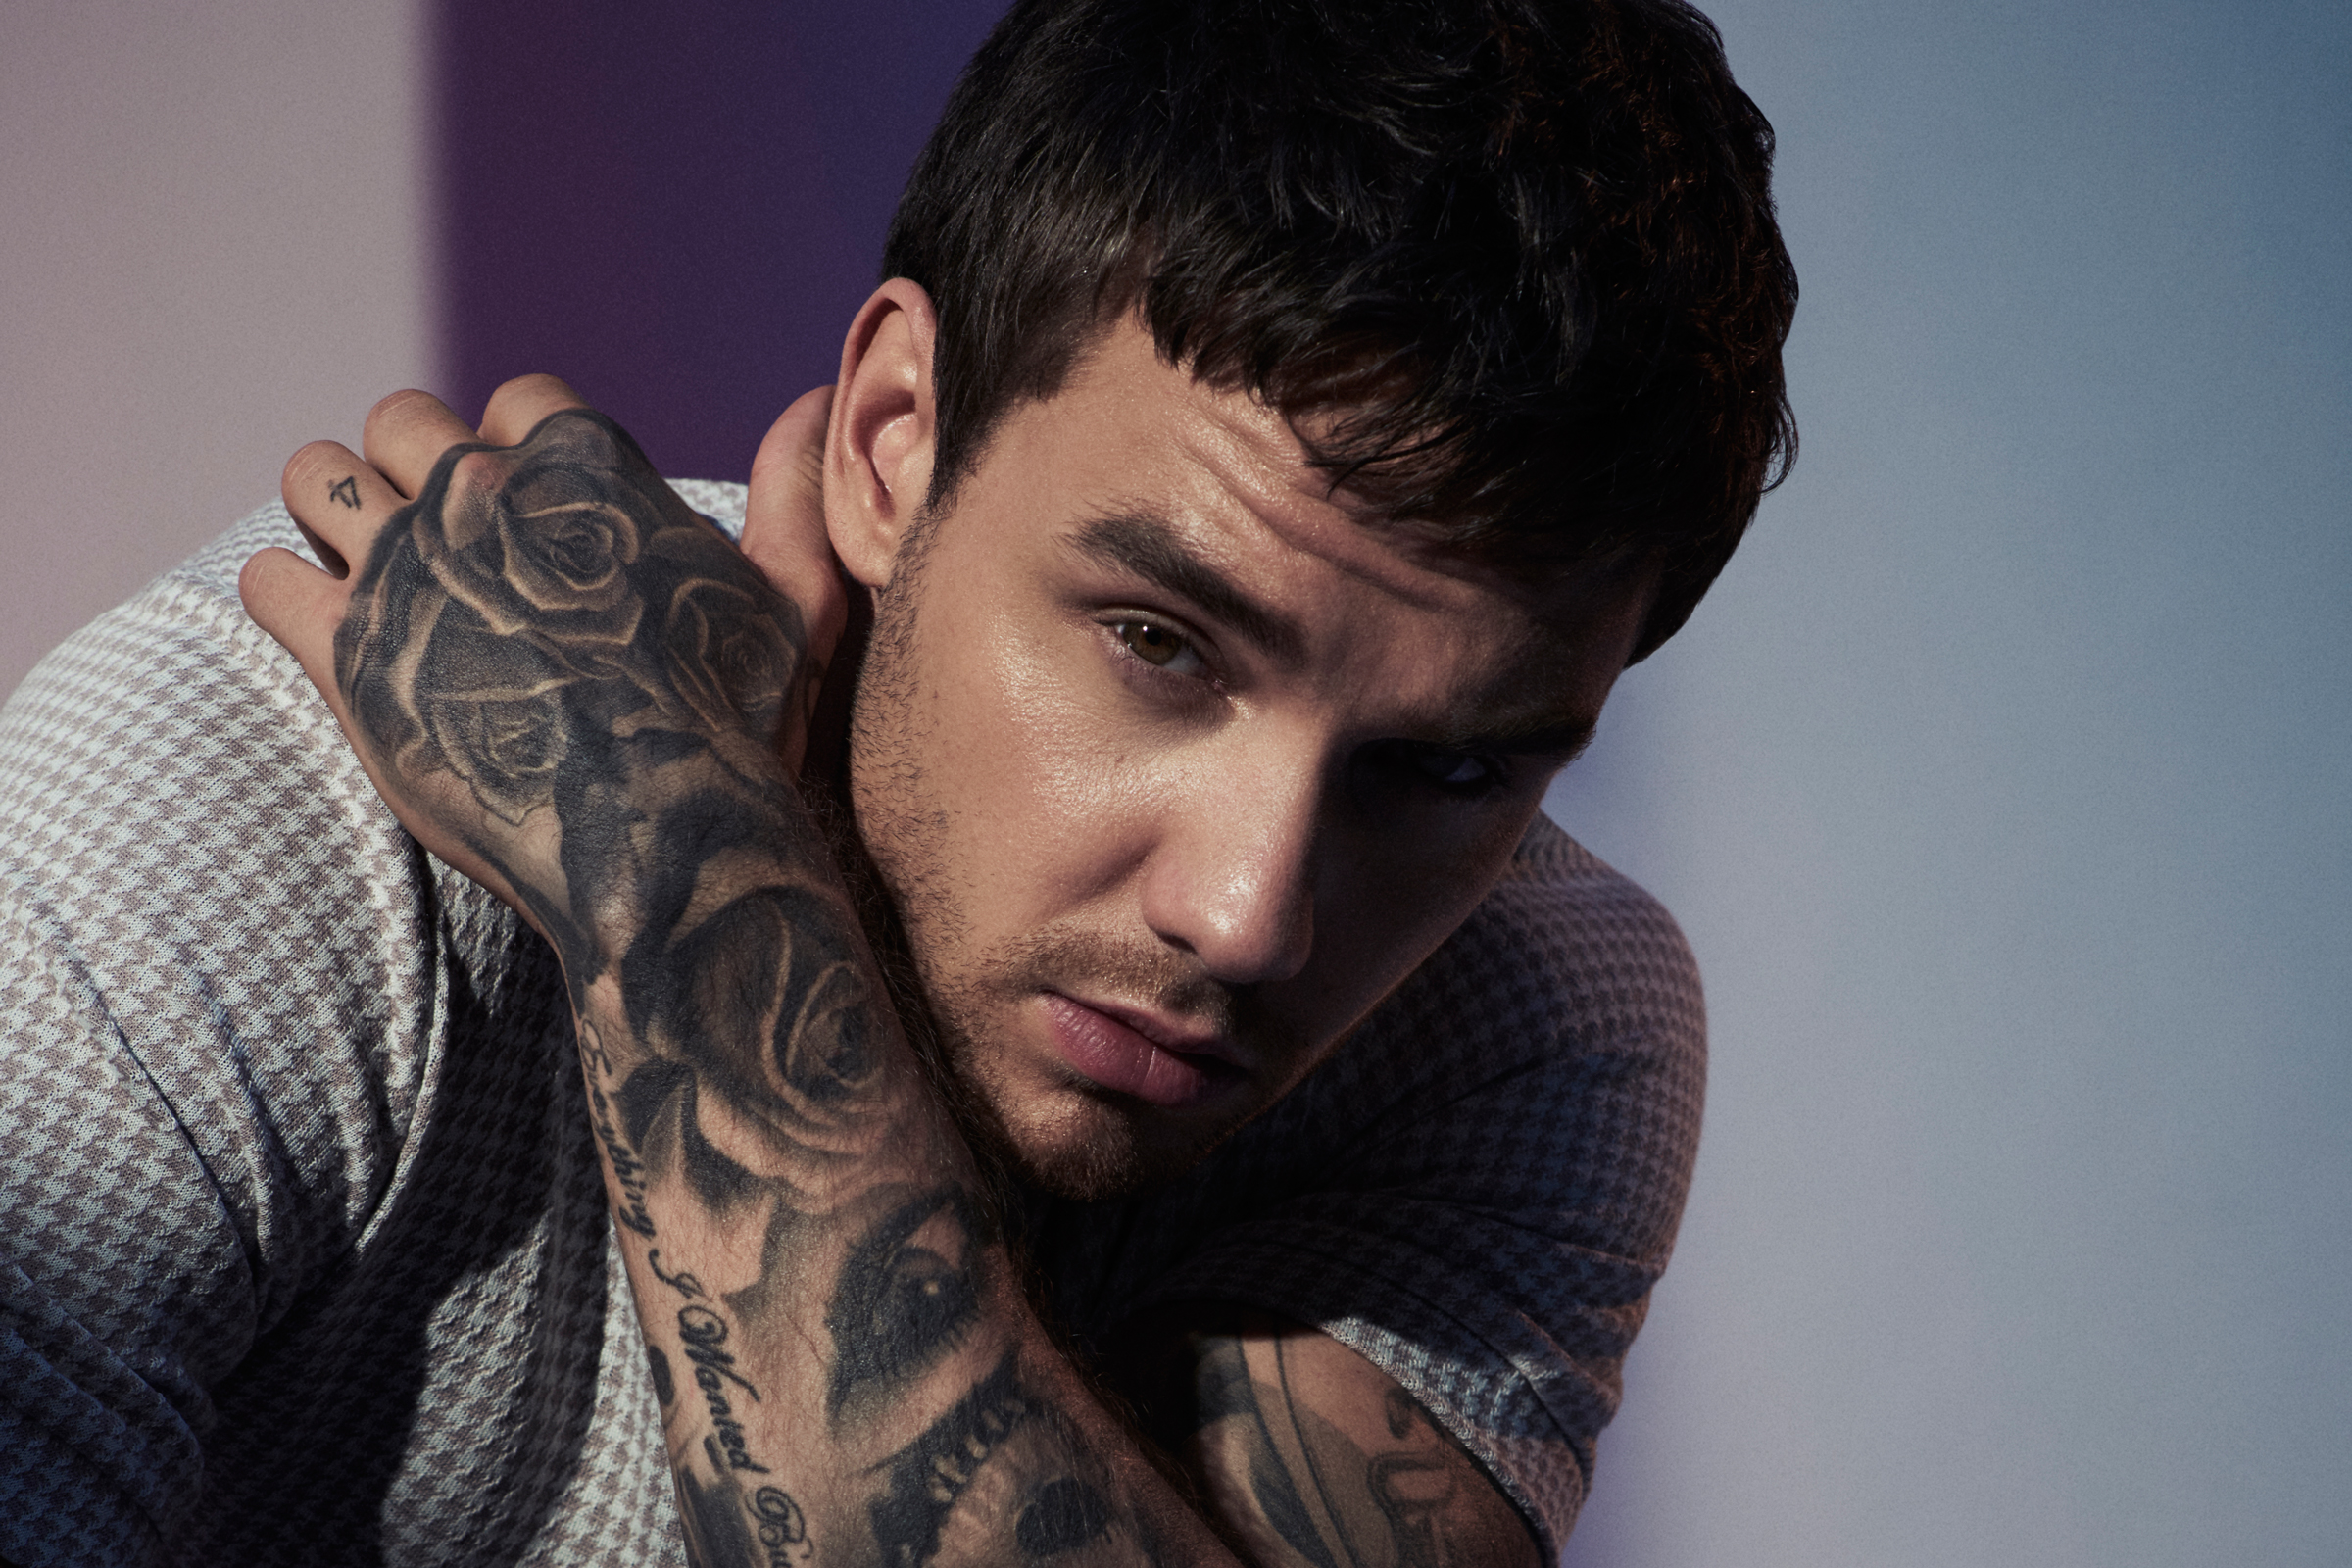 Hear Liam Payne Ponder Ways To Stack It Up On New Song